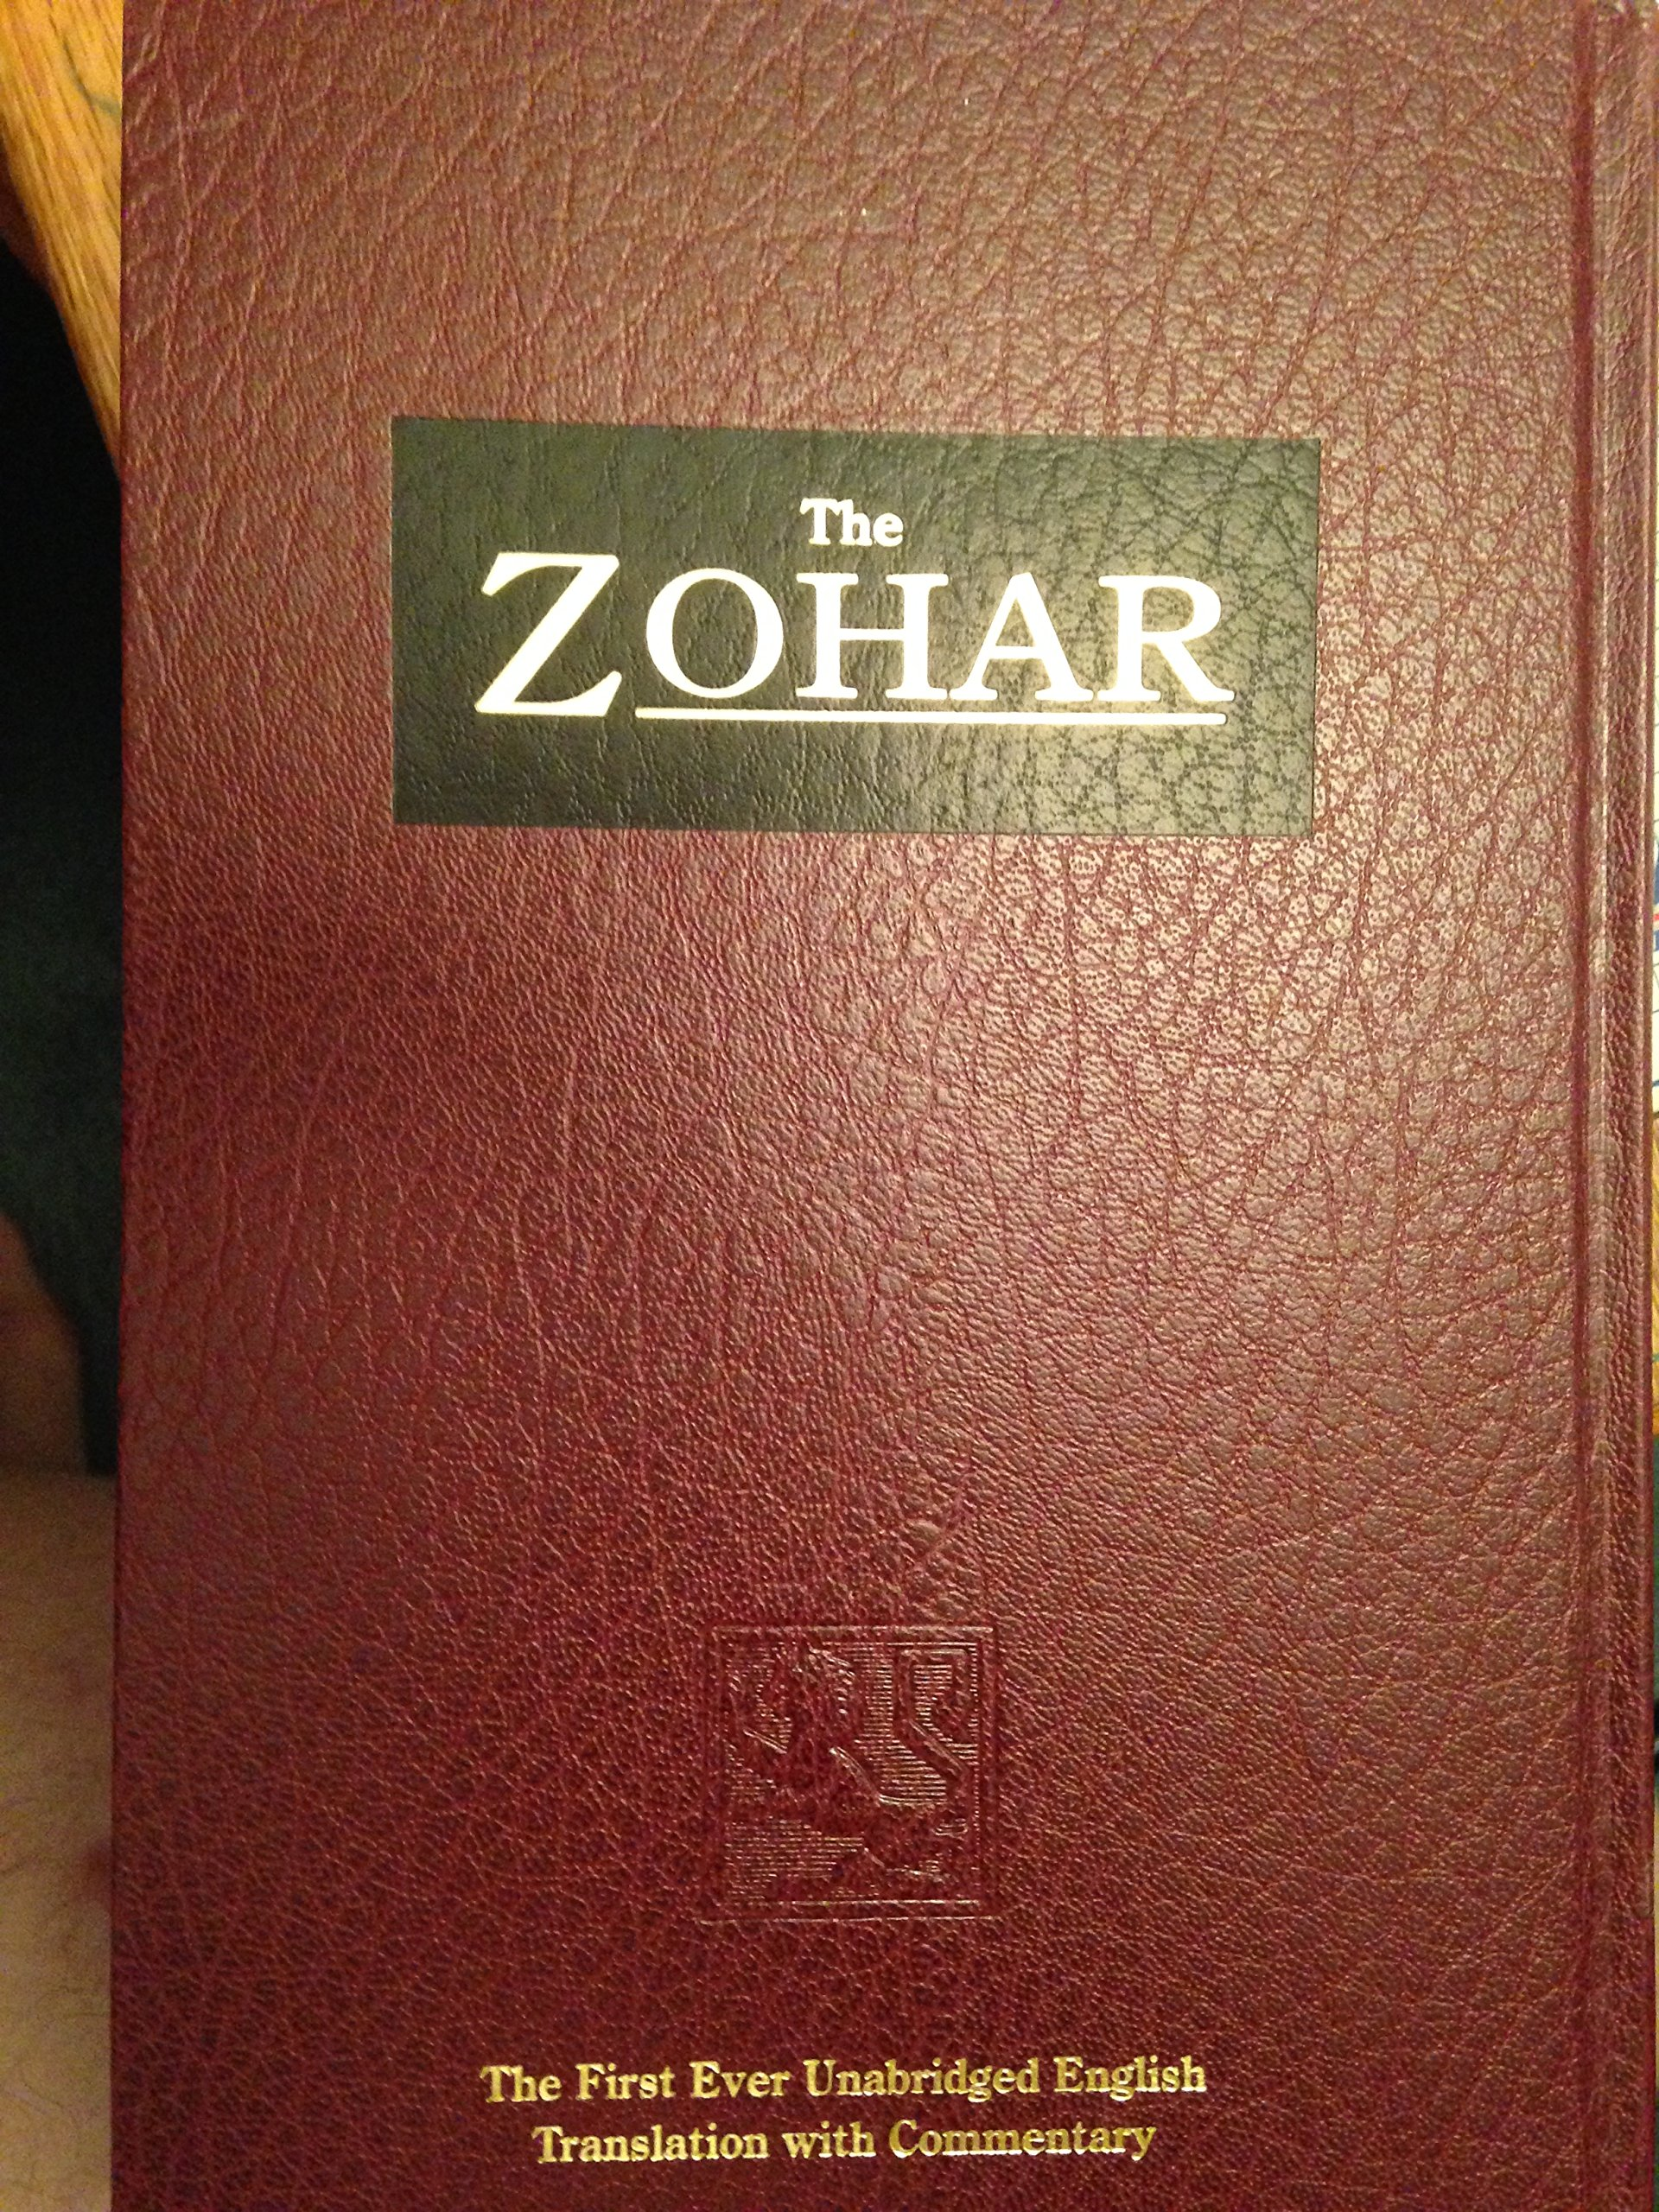 The Zohar, Vol. 16: From the Book of Avraham: With the Sulam Commentary by Yehuda Ashlag